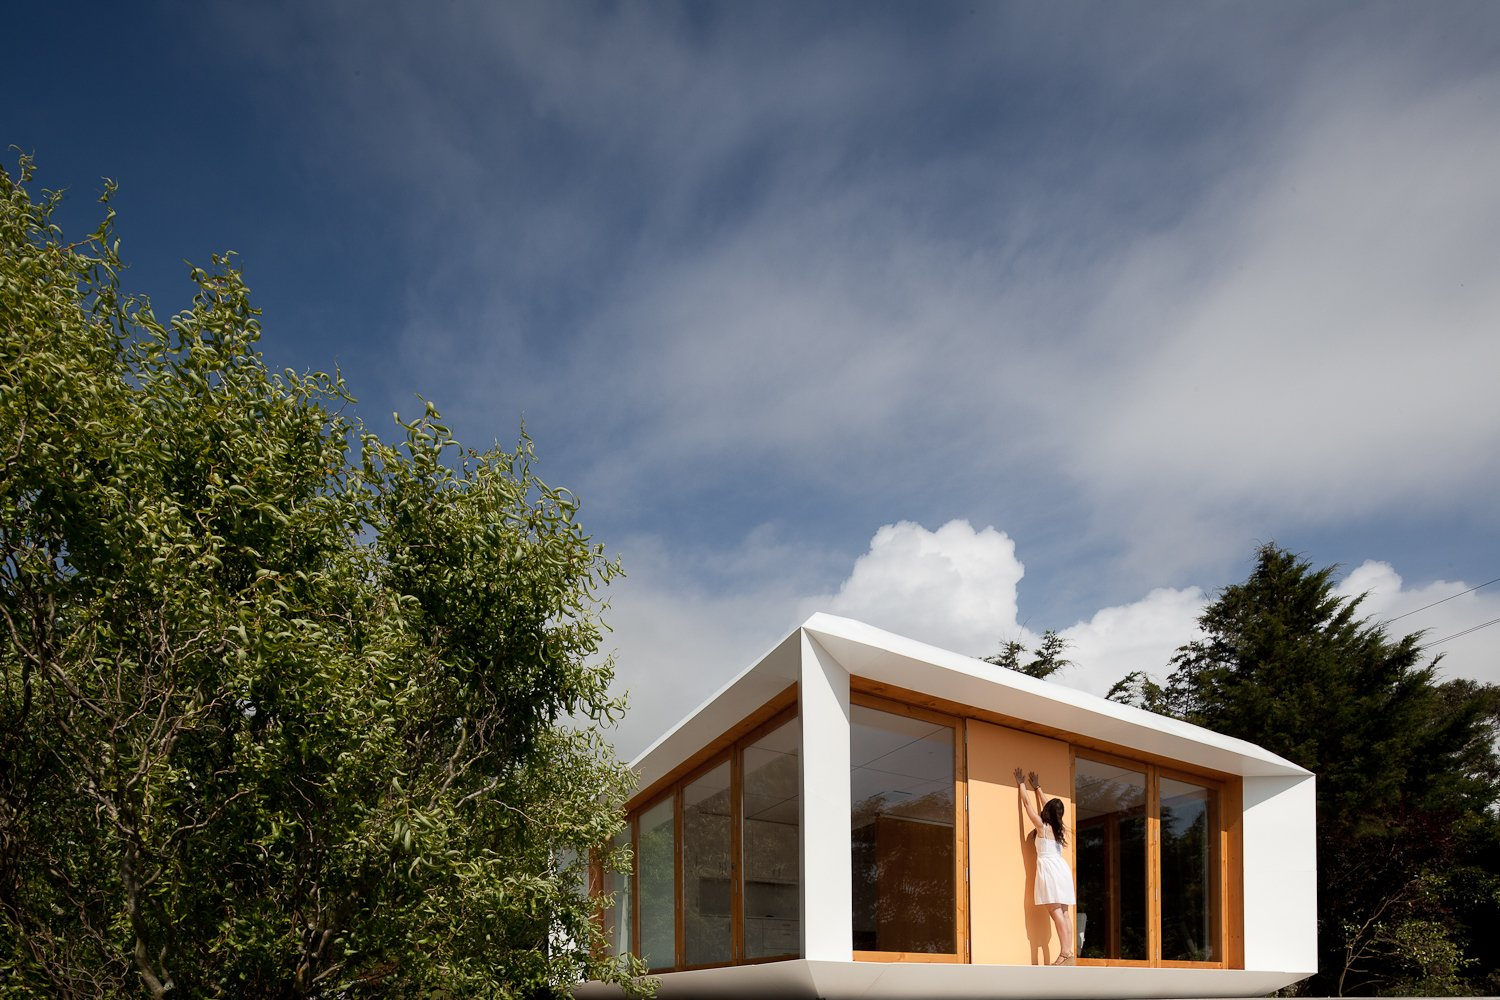 Mina House http://www.mimahousing.com/mima-house  Beautiful Prefabs from 8 Companies That Are Revolutionizing Kit Homes